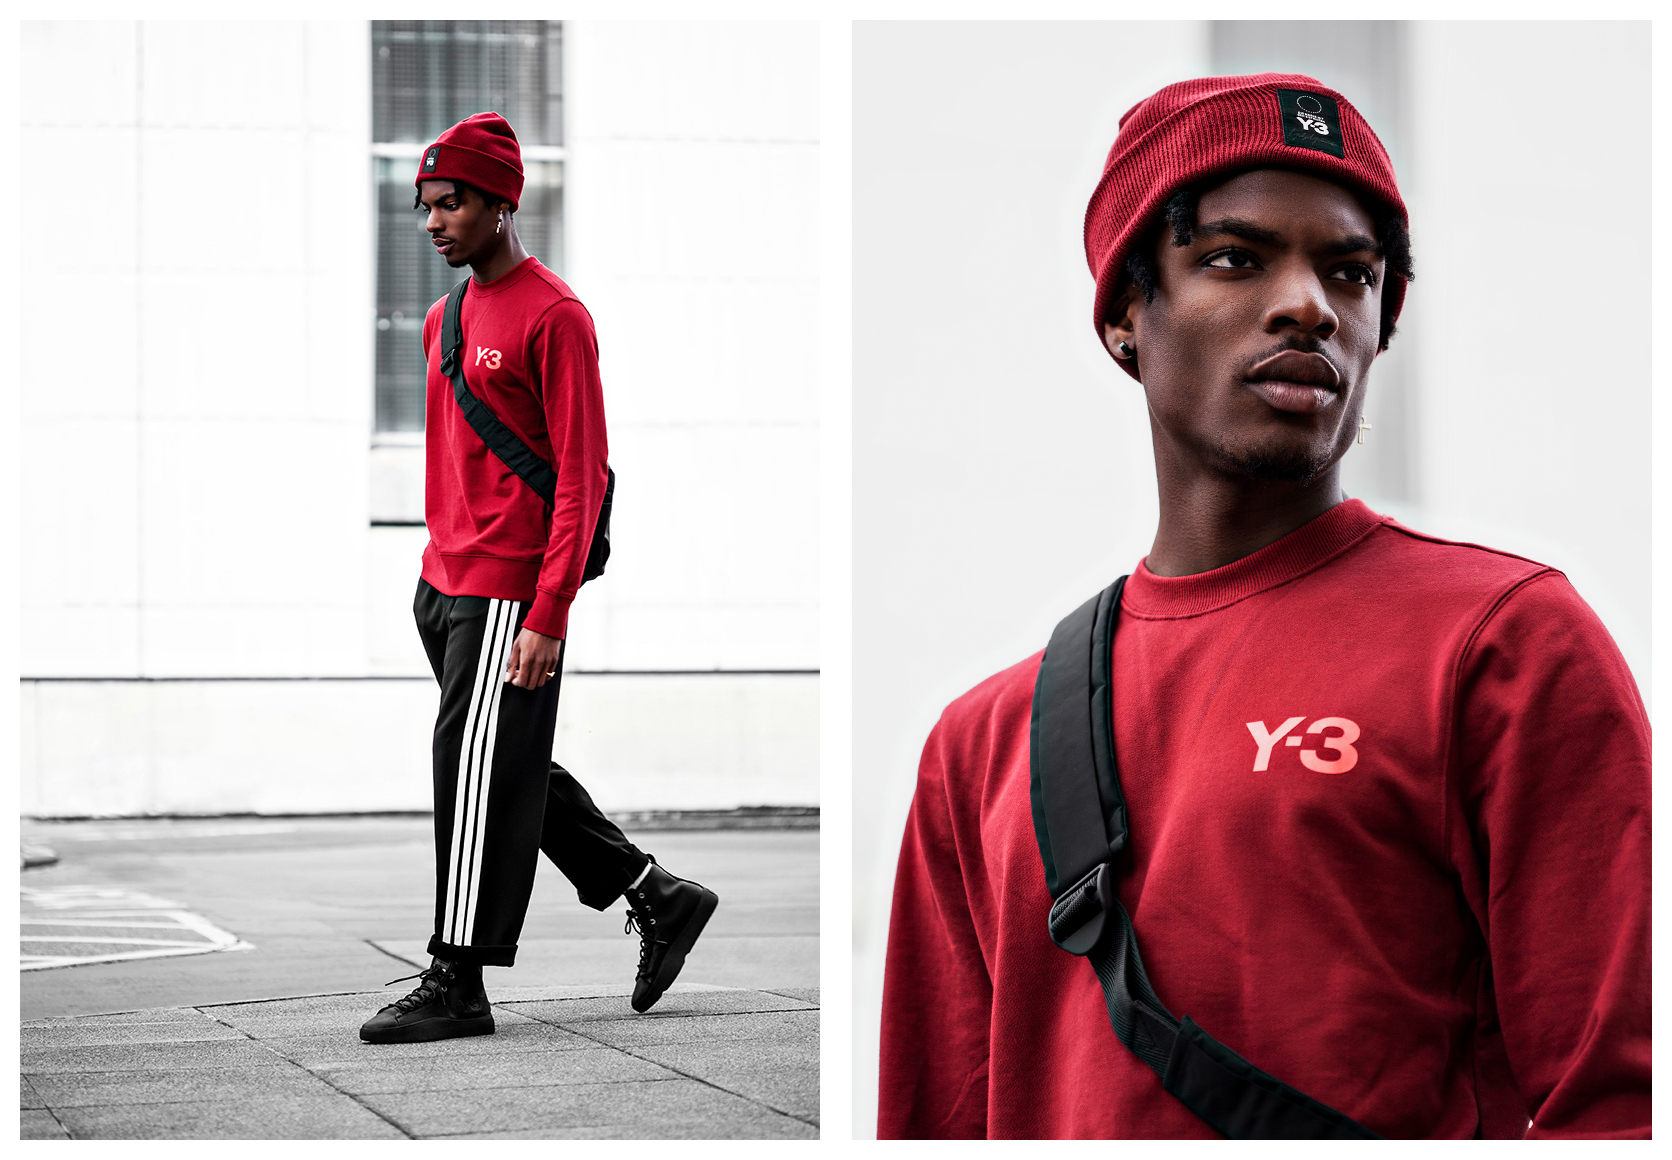 Photography by Kev Foster for Philip Browne_Y3 AW18 PB Lookbook_013.jpg